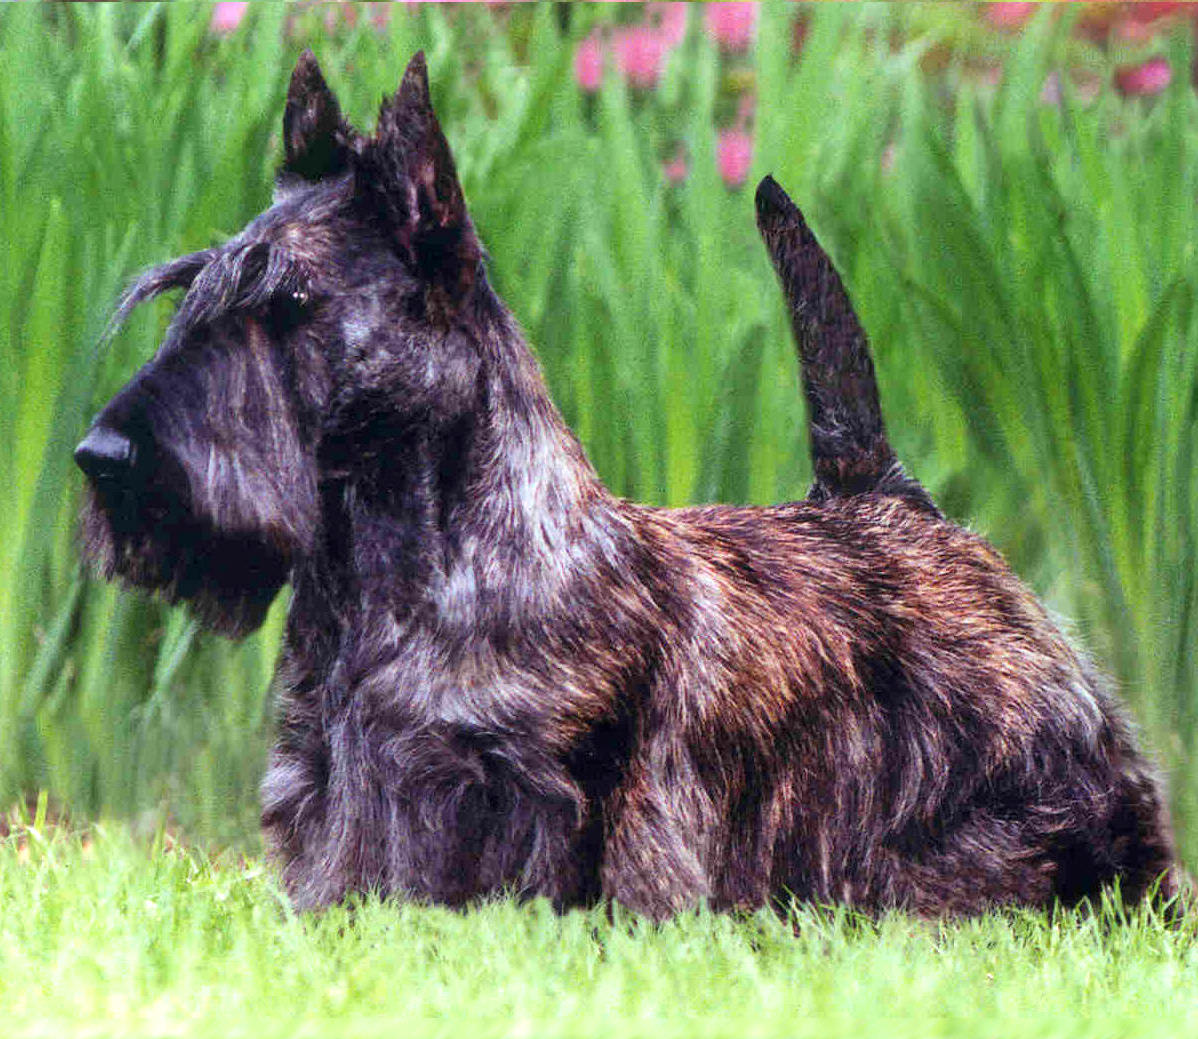 Brown Scottish Terrier dog wallpaper